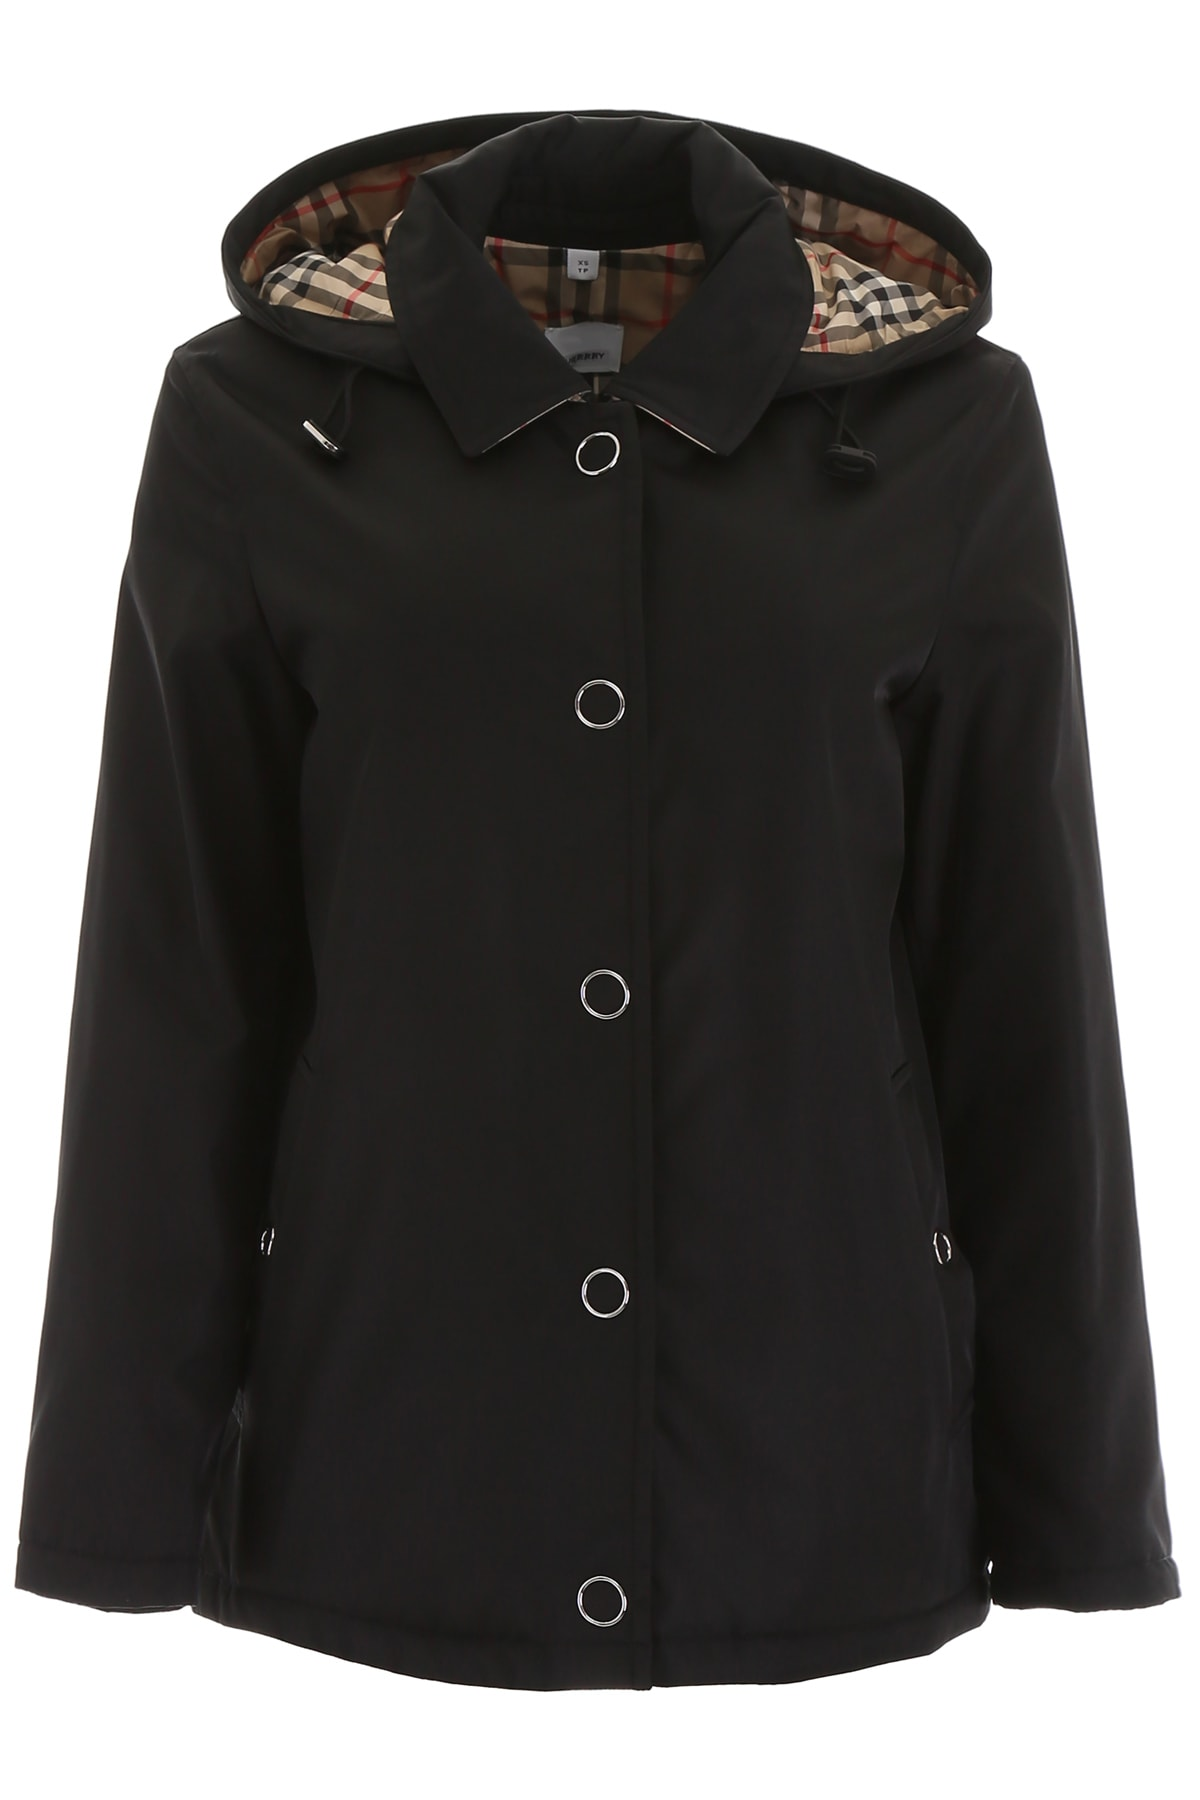 Burberry Southport Jacket